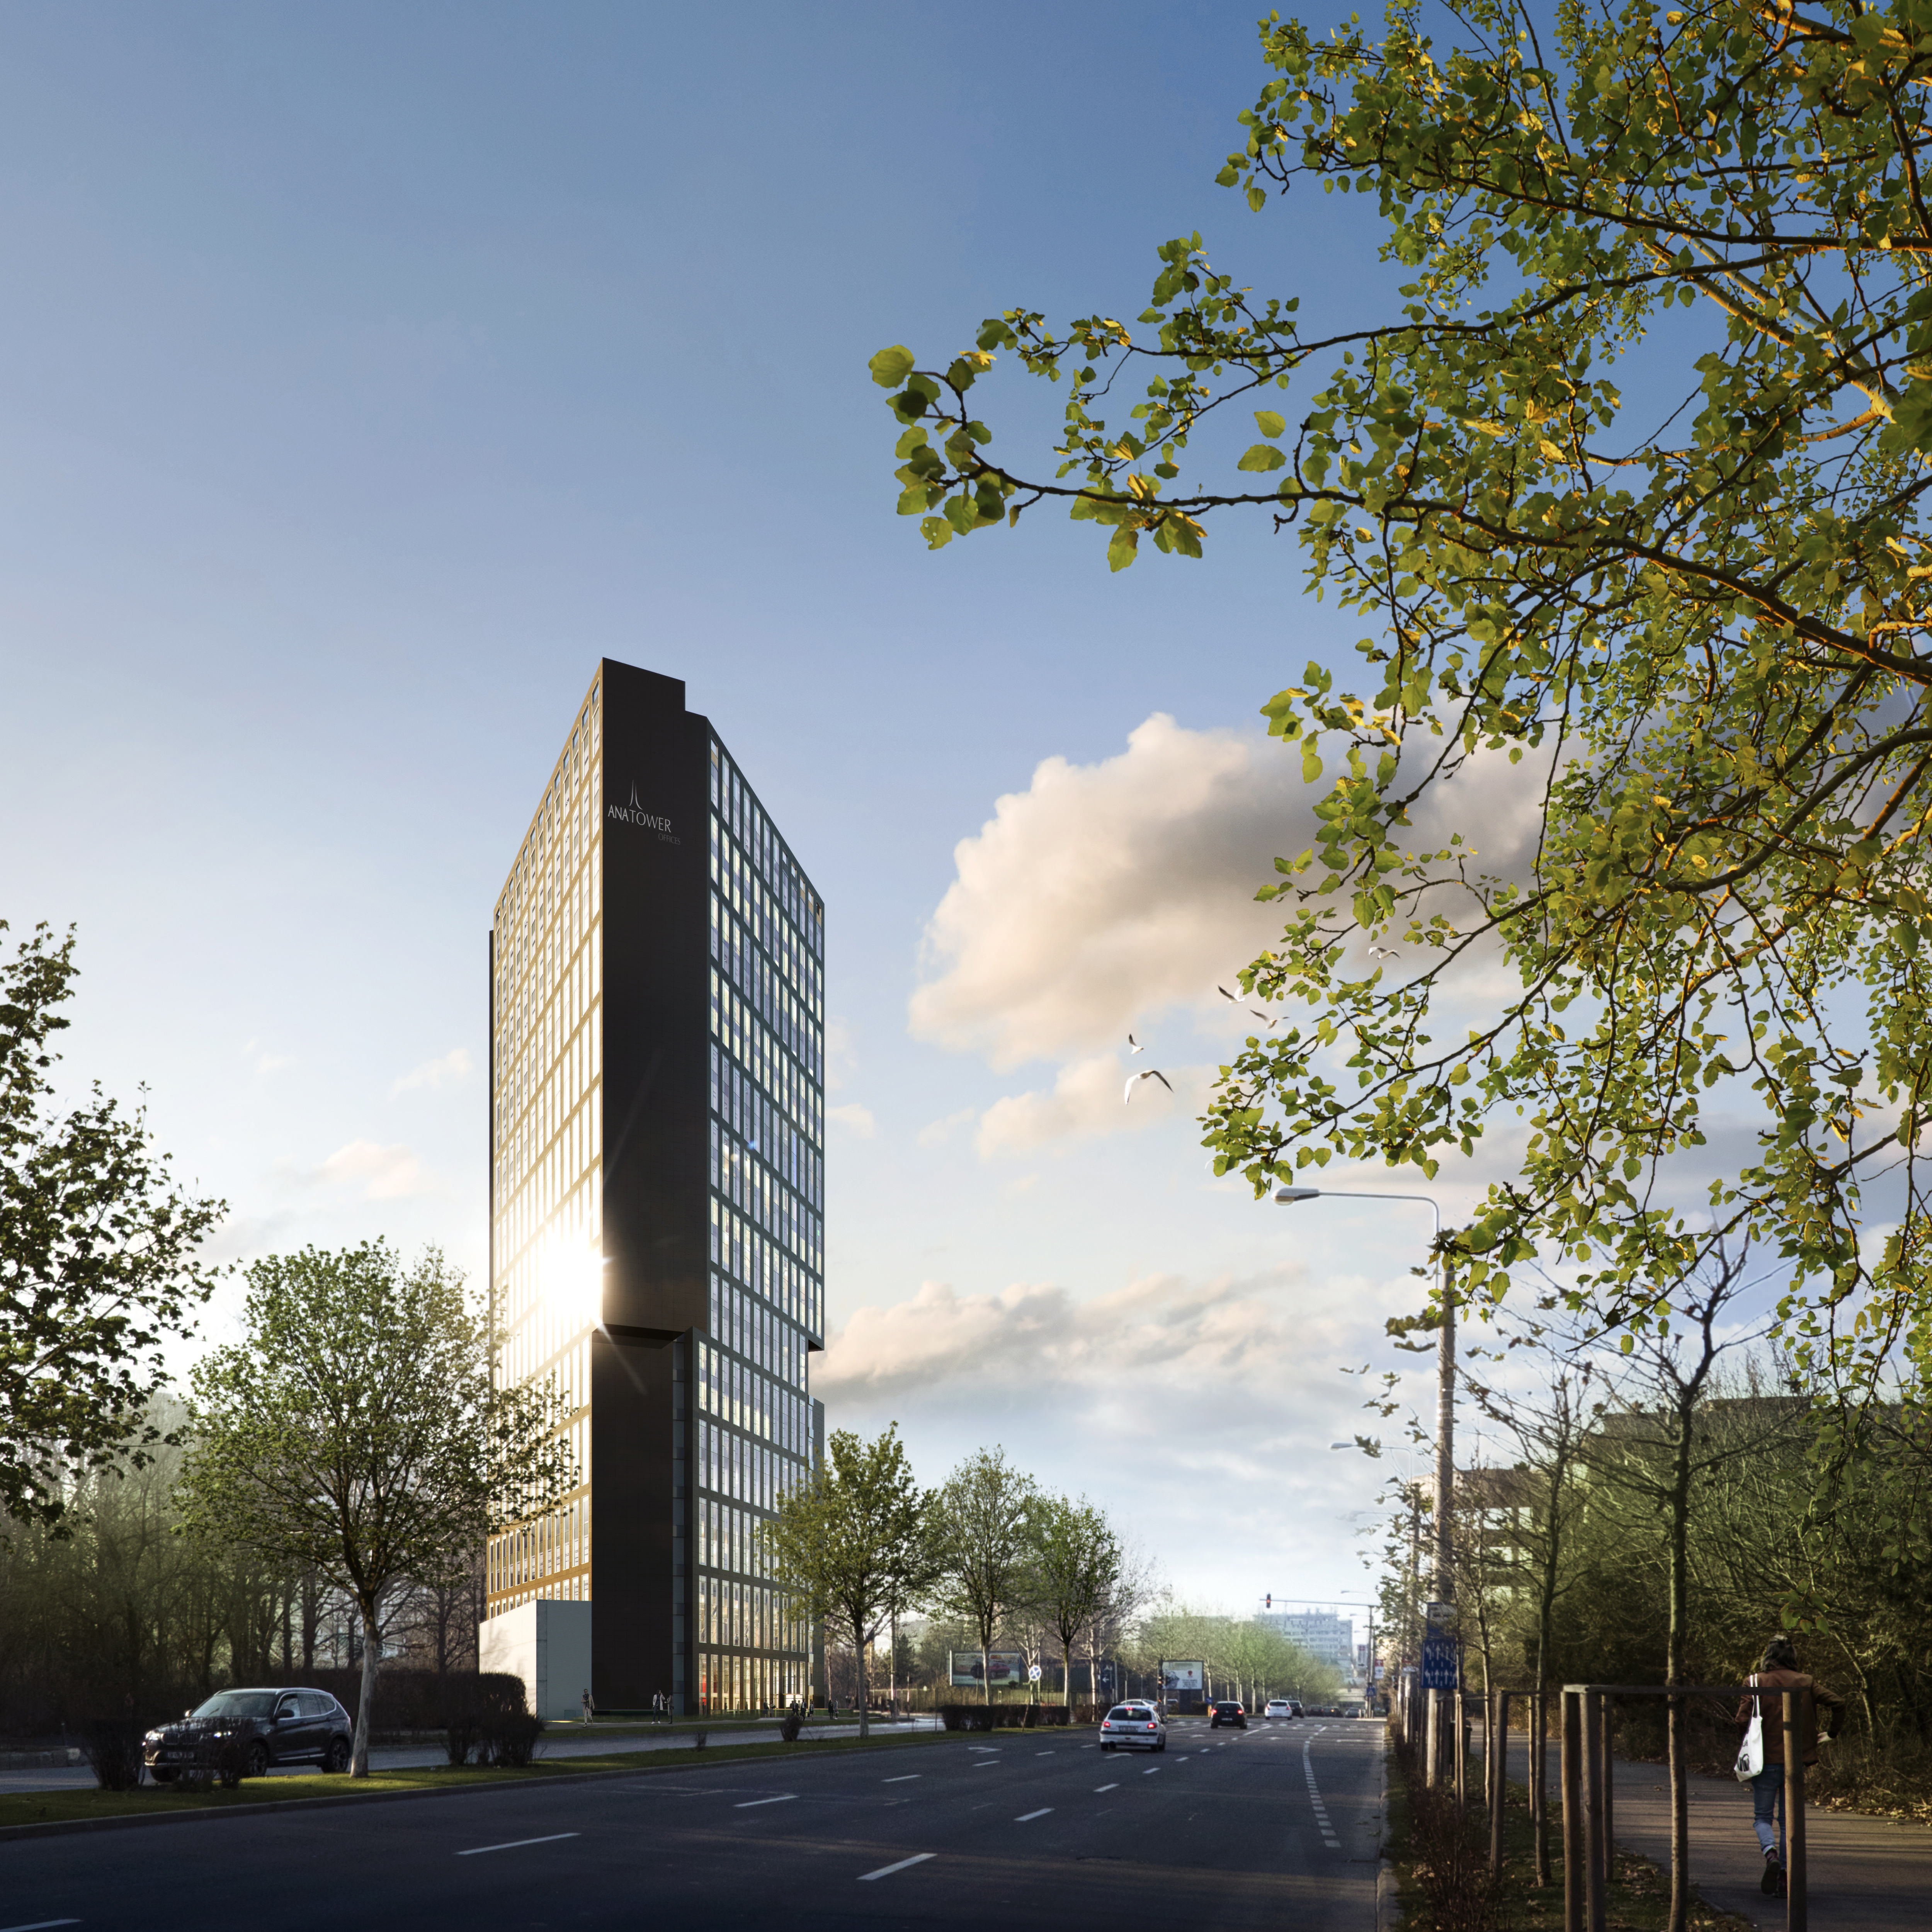 Strabag wins 39 mln euro deal to build office tower in Bucharest